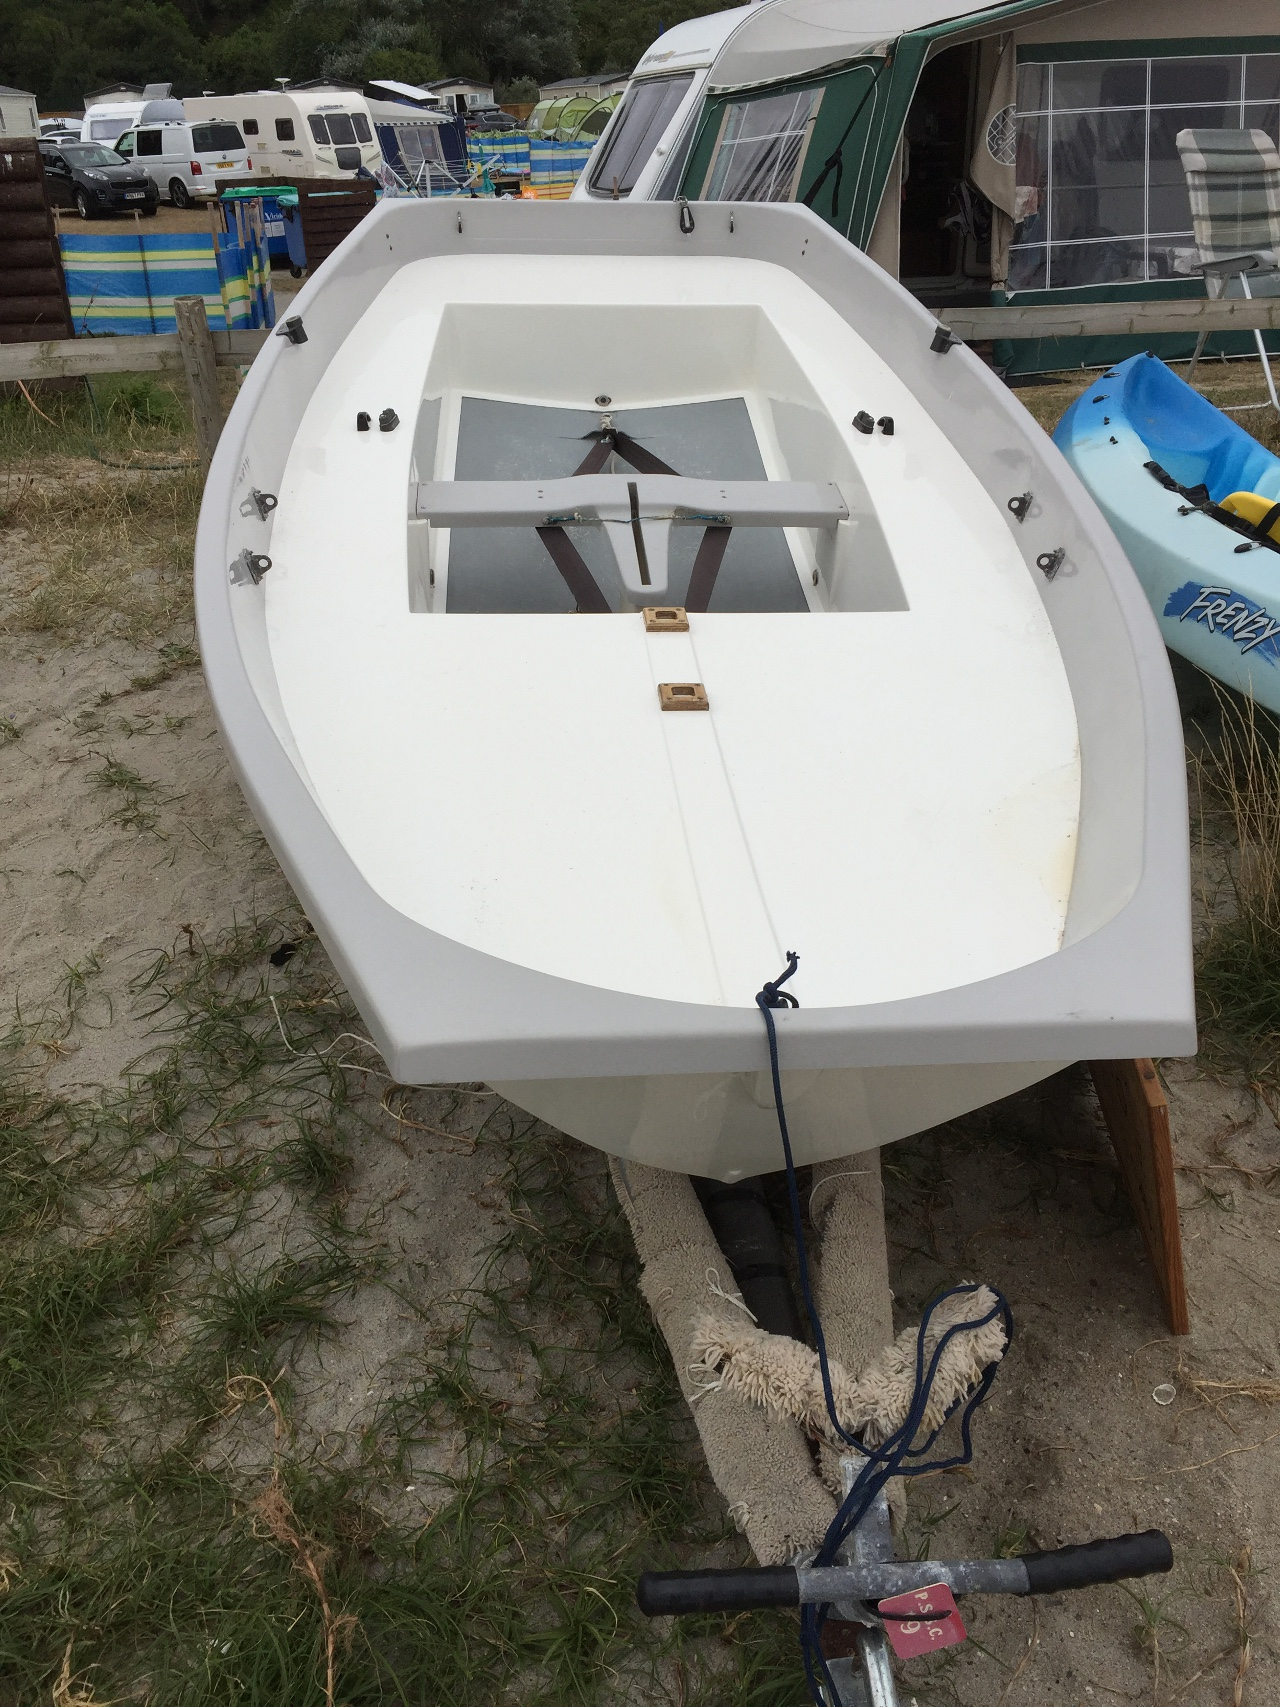 A GRP Mirror dinghy hull, with no rig, sails or foils, on a beach